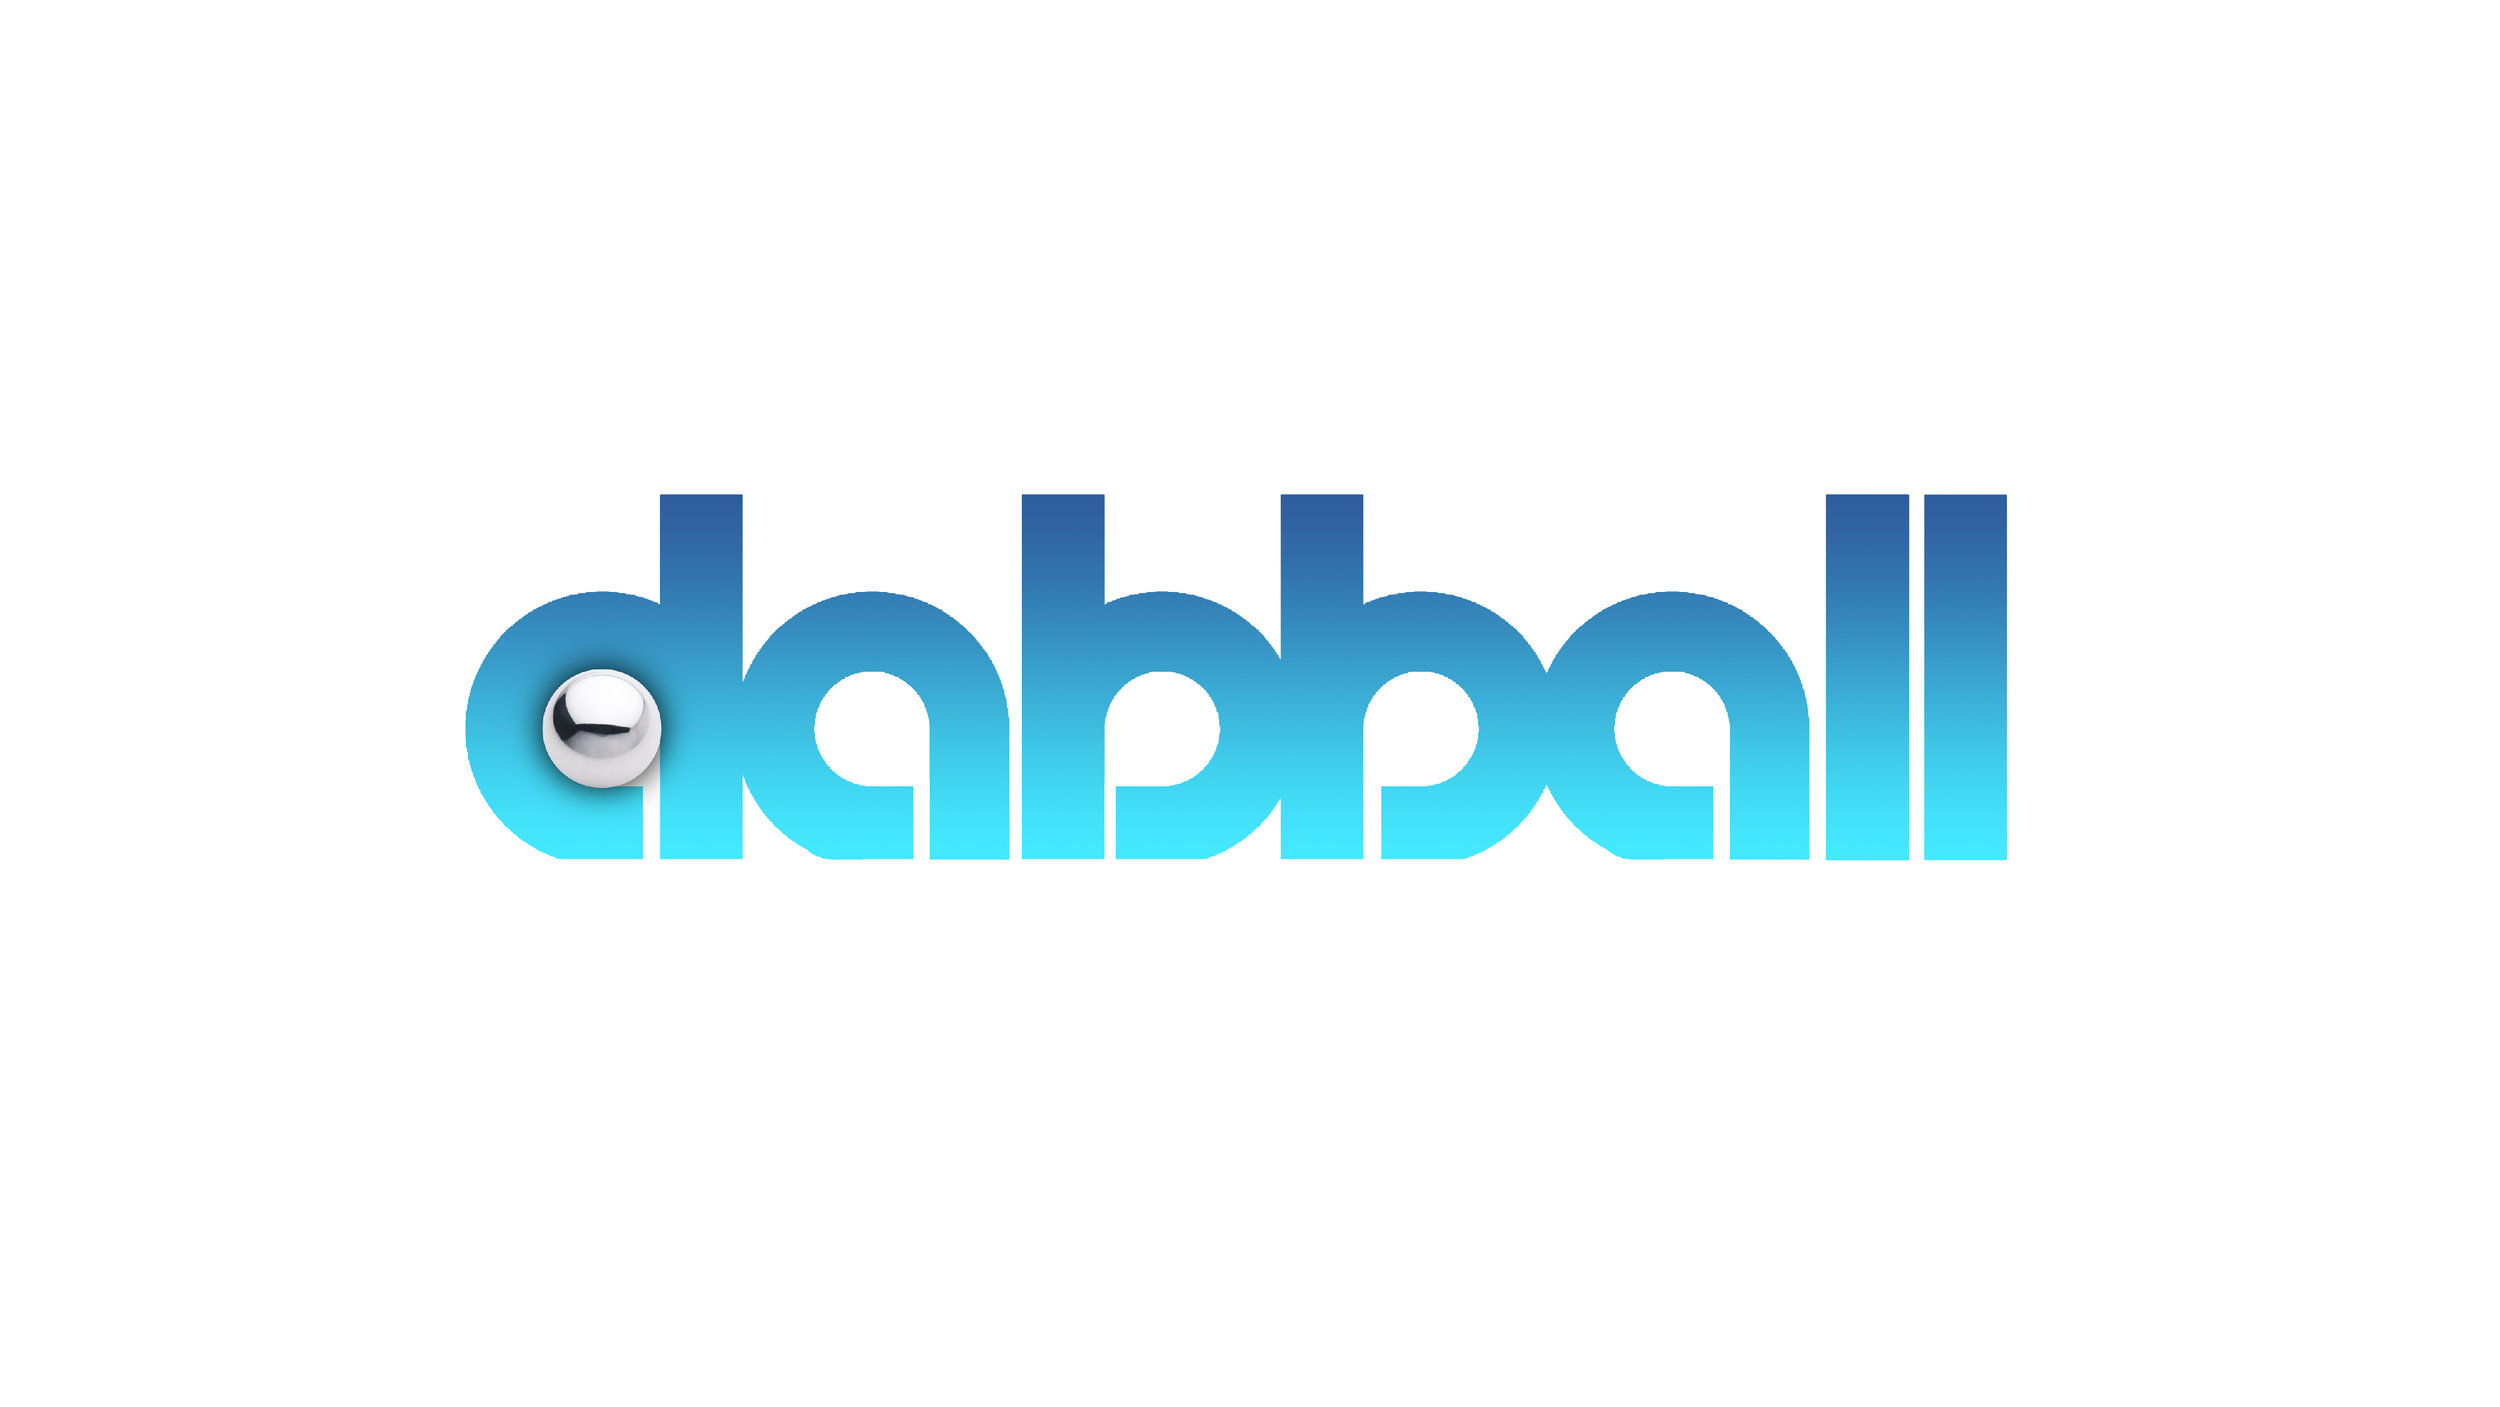 dabball is the world's first art gallery meets game app I created with the help of option-g and eyemagine. It allows players to purchase more than 400 museum-quality prints by 43 international artists directly from their iPhone and iPad by way of interactive dexterity games.